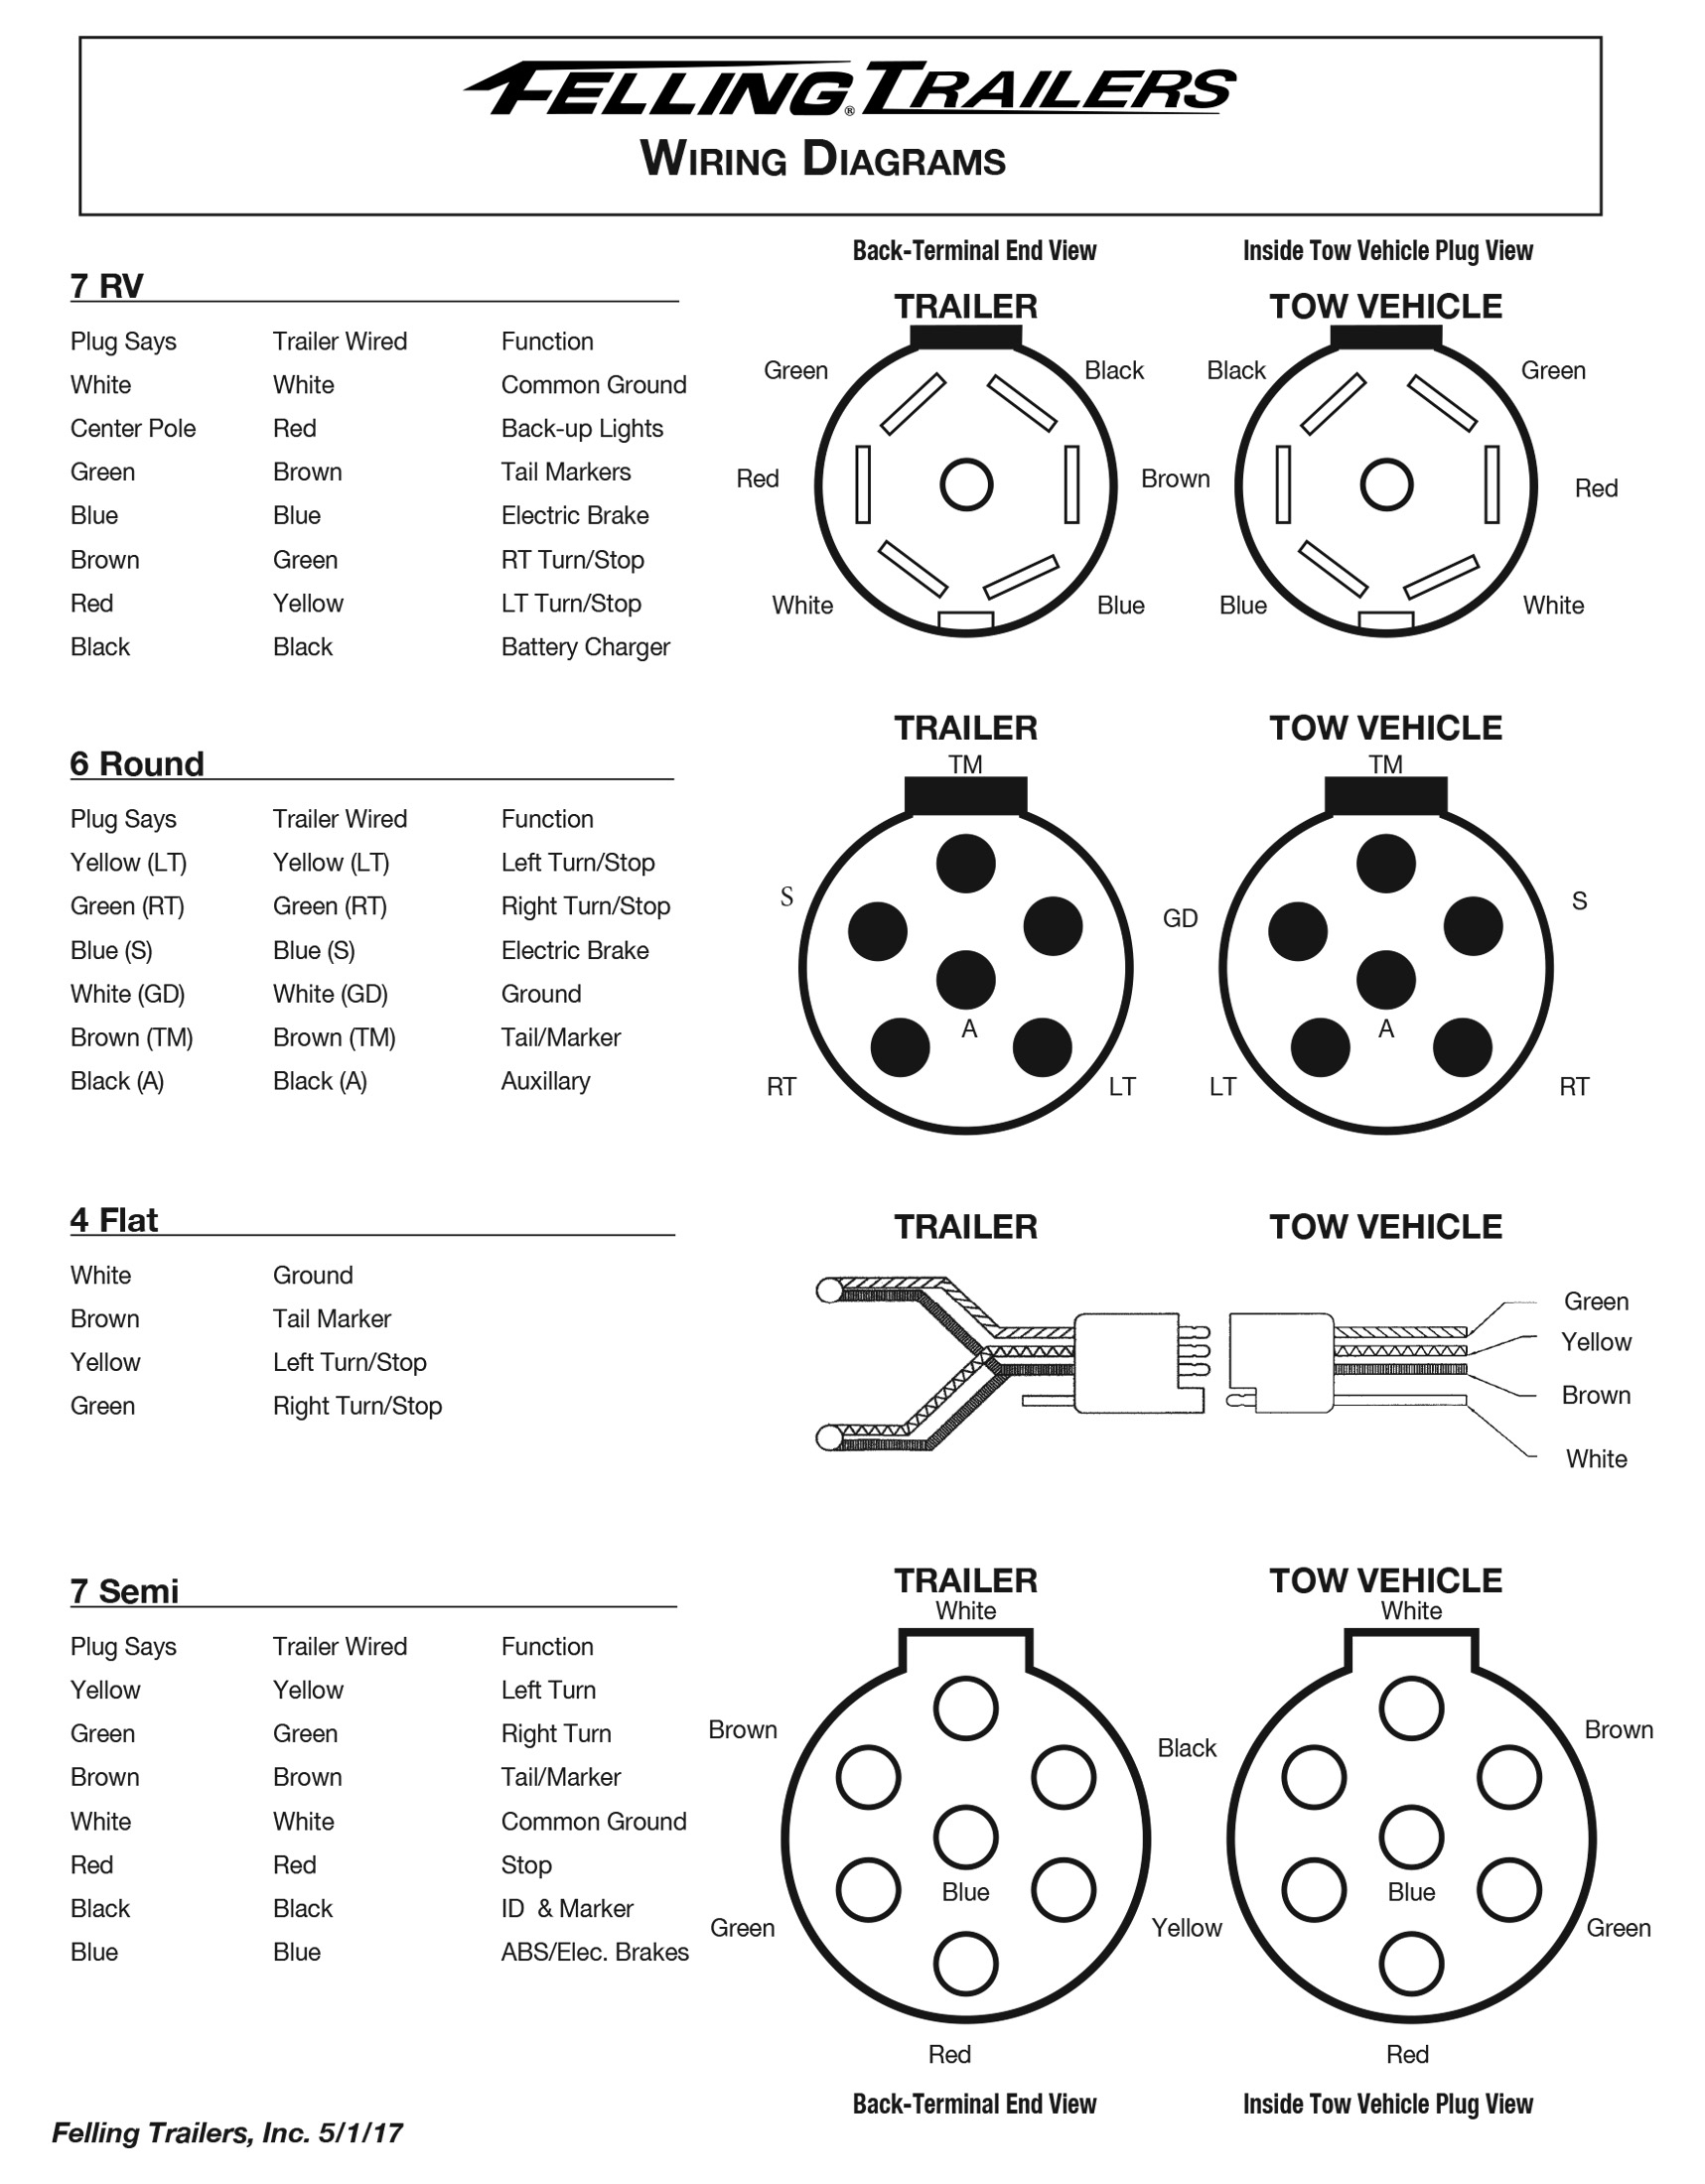 Service- Felling Trailers Wiring Diagrams, Wheel Toque - Car Trailer Wiring Diagram With Brakes